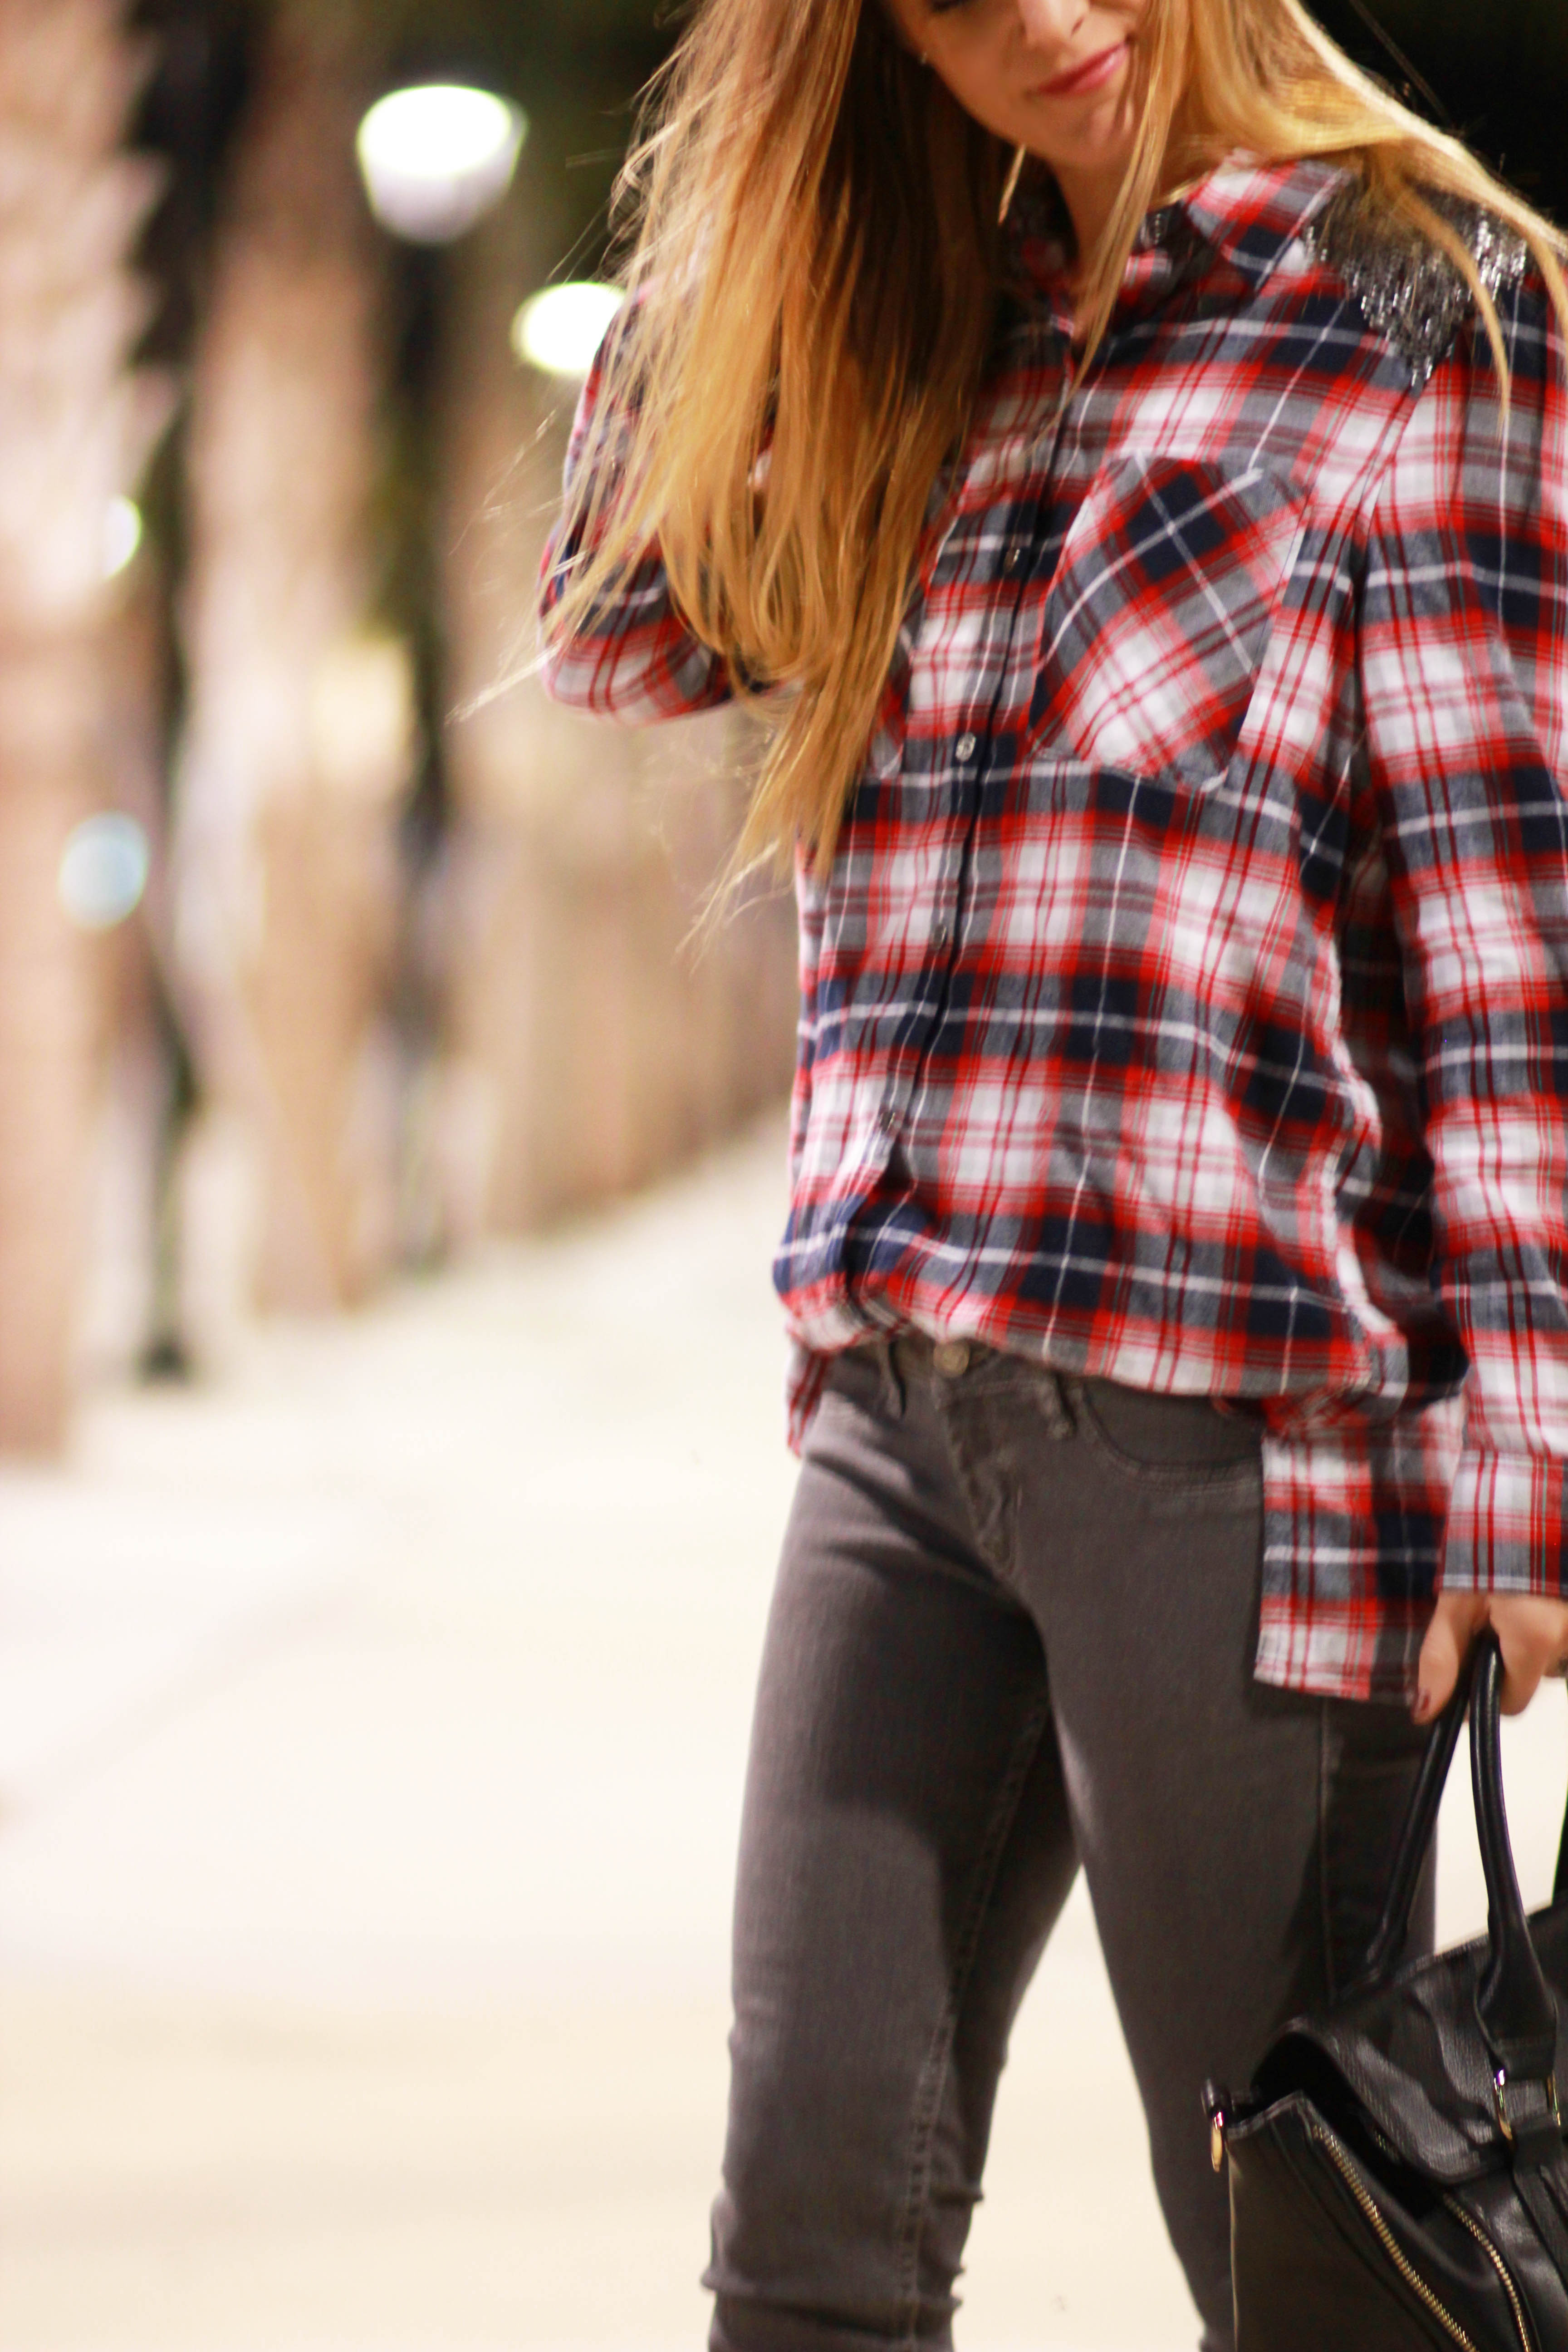 florida, orlando fashion blogger styles aeropostale plaid top with hollister grey jeans, and windsor lace up heels for a casual fall outfit